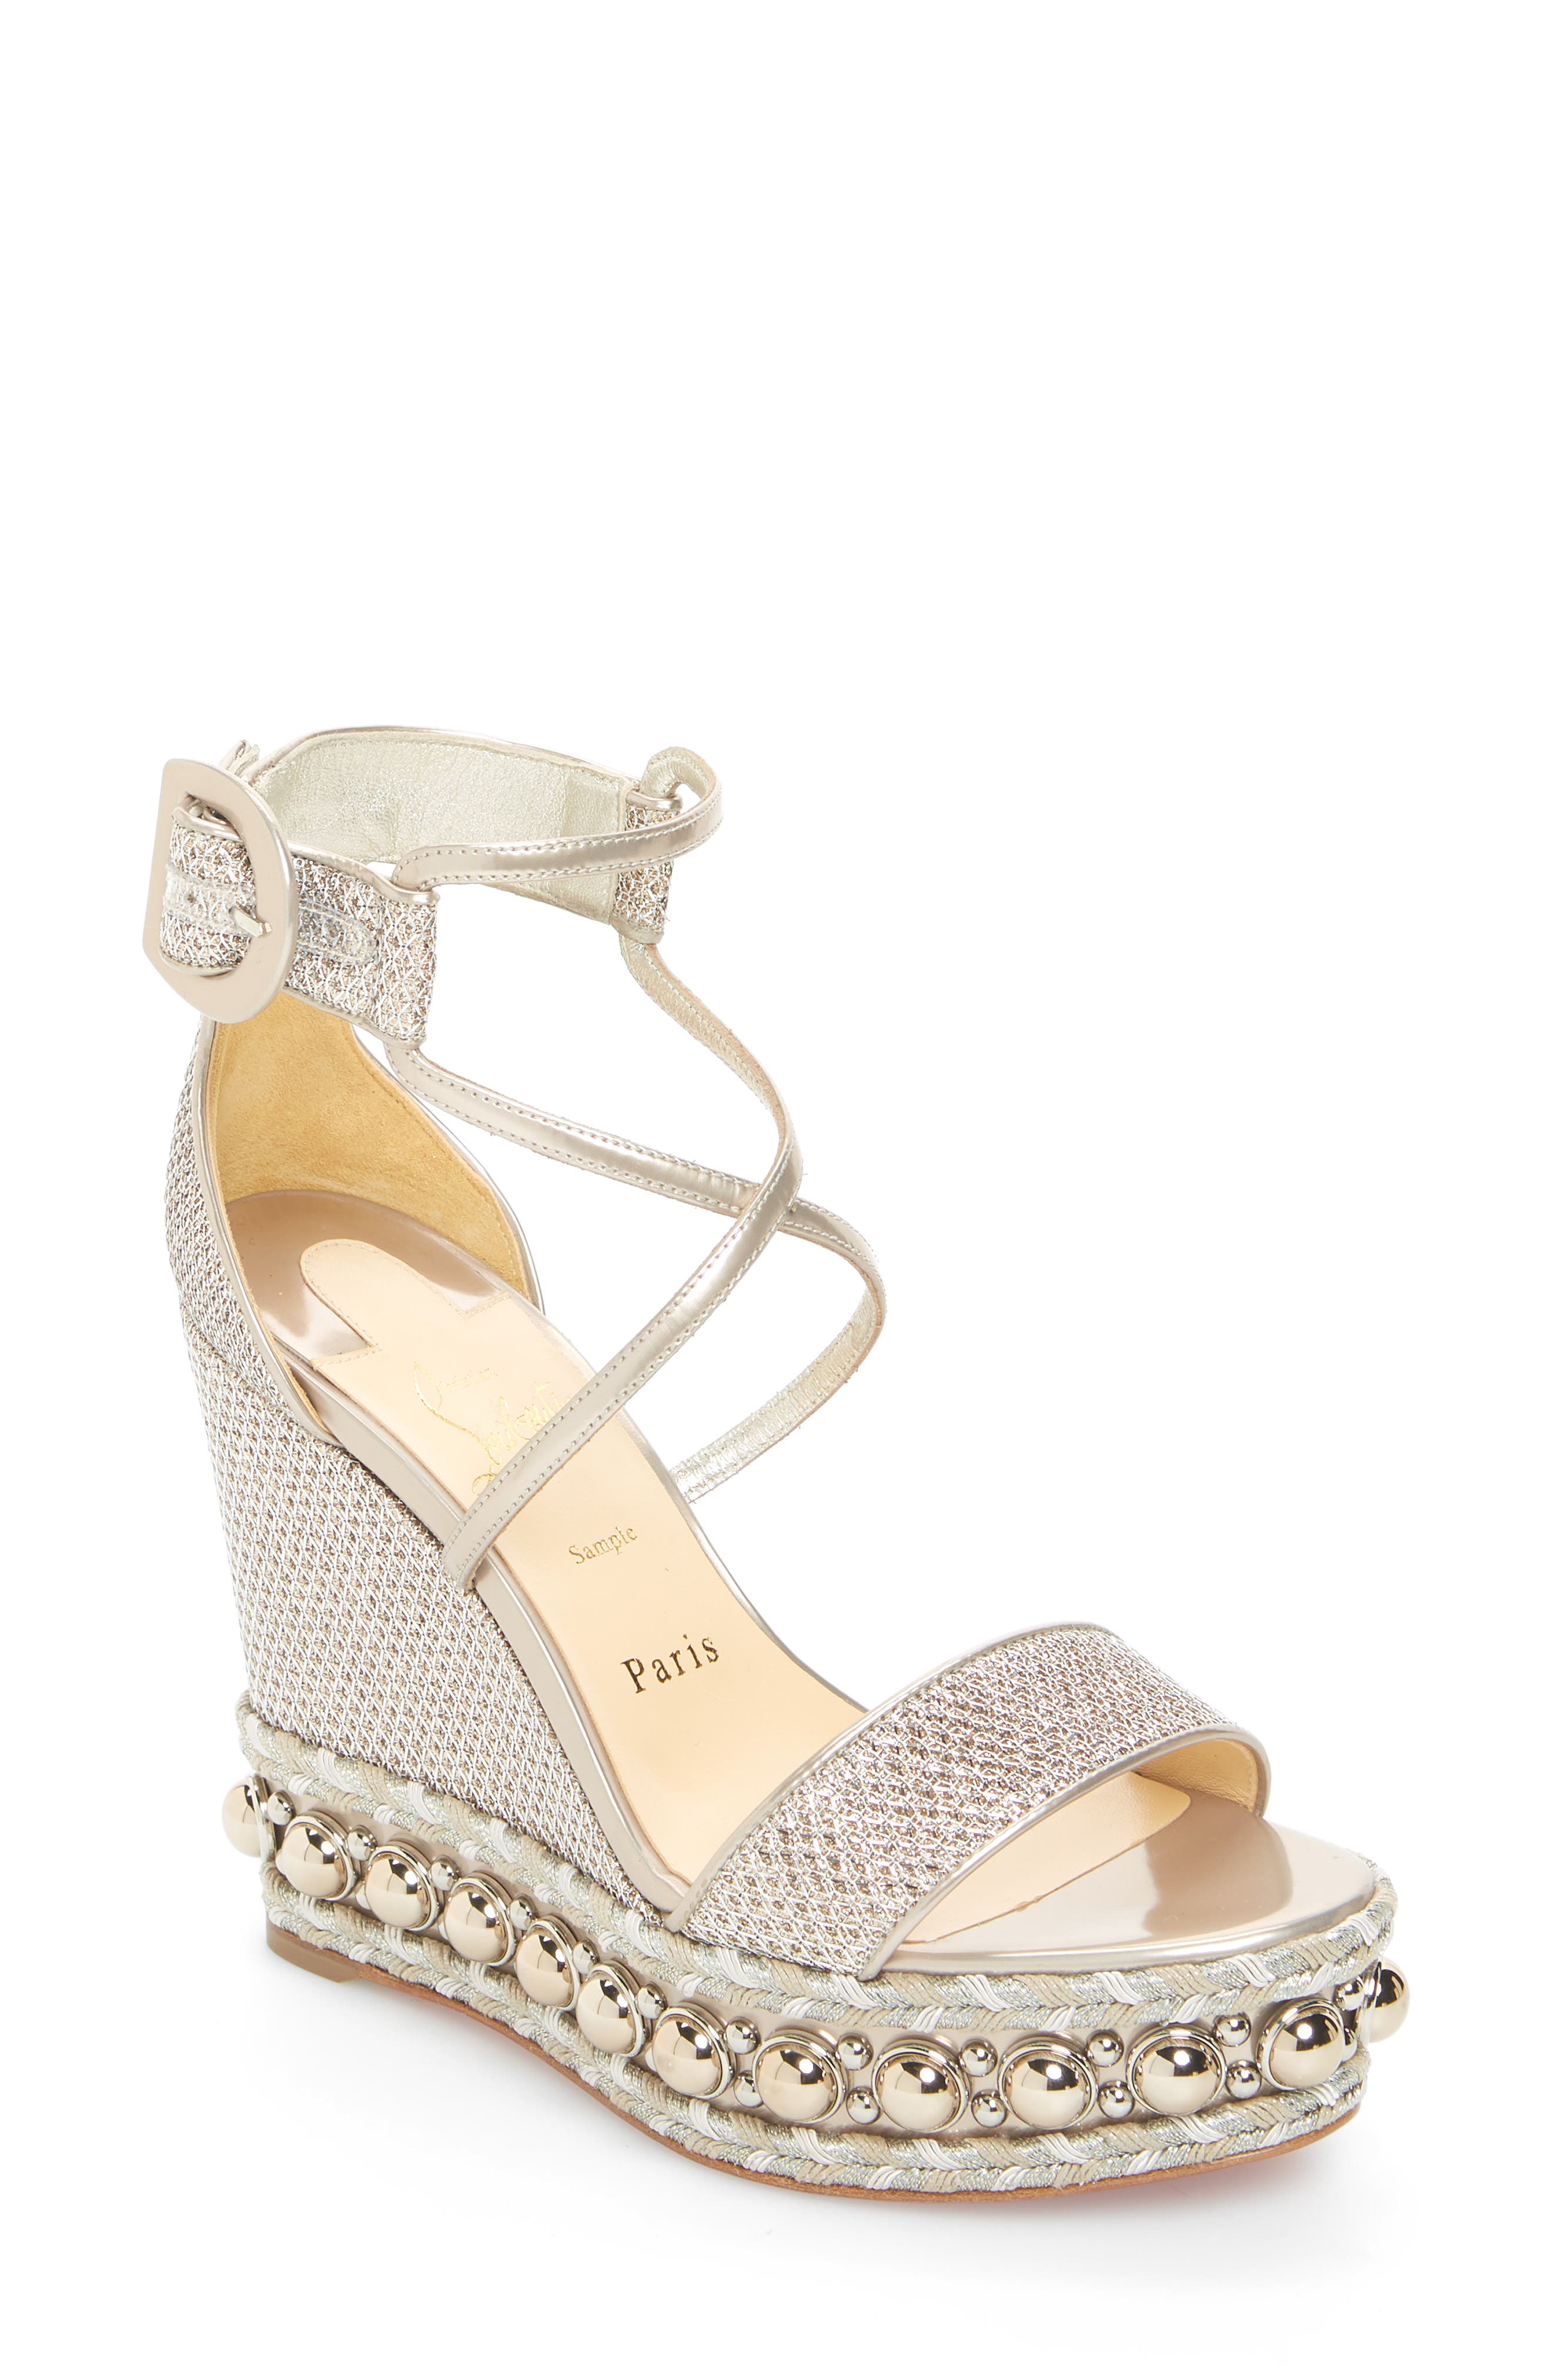 Chocazeppa Studded Wedge,                         Main,                         color, COLOMBE